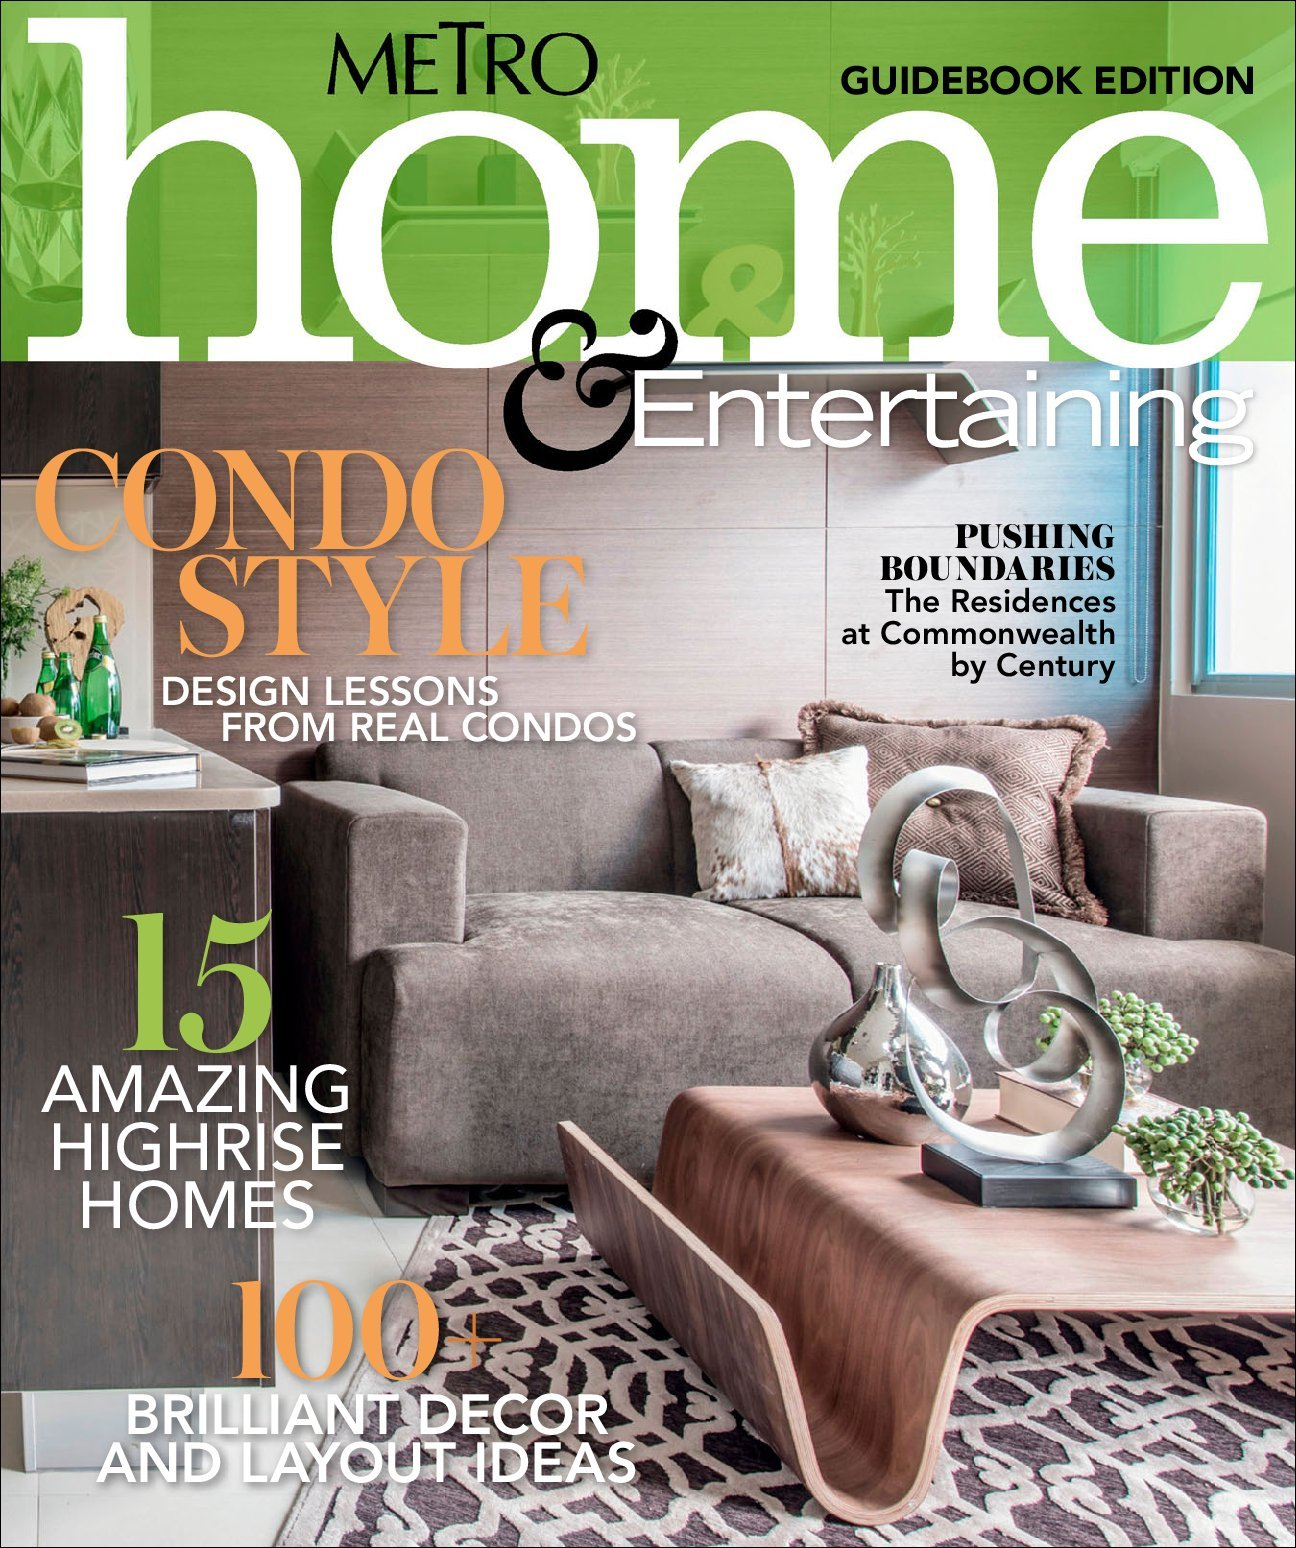 Metro Home And Entertaining Guidebook Edition Digital